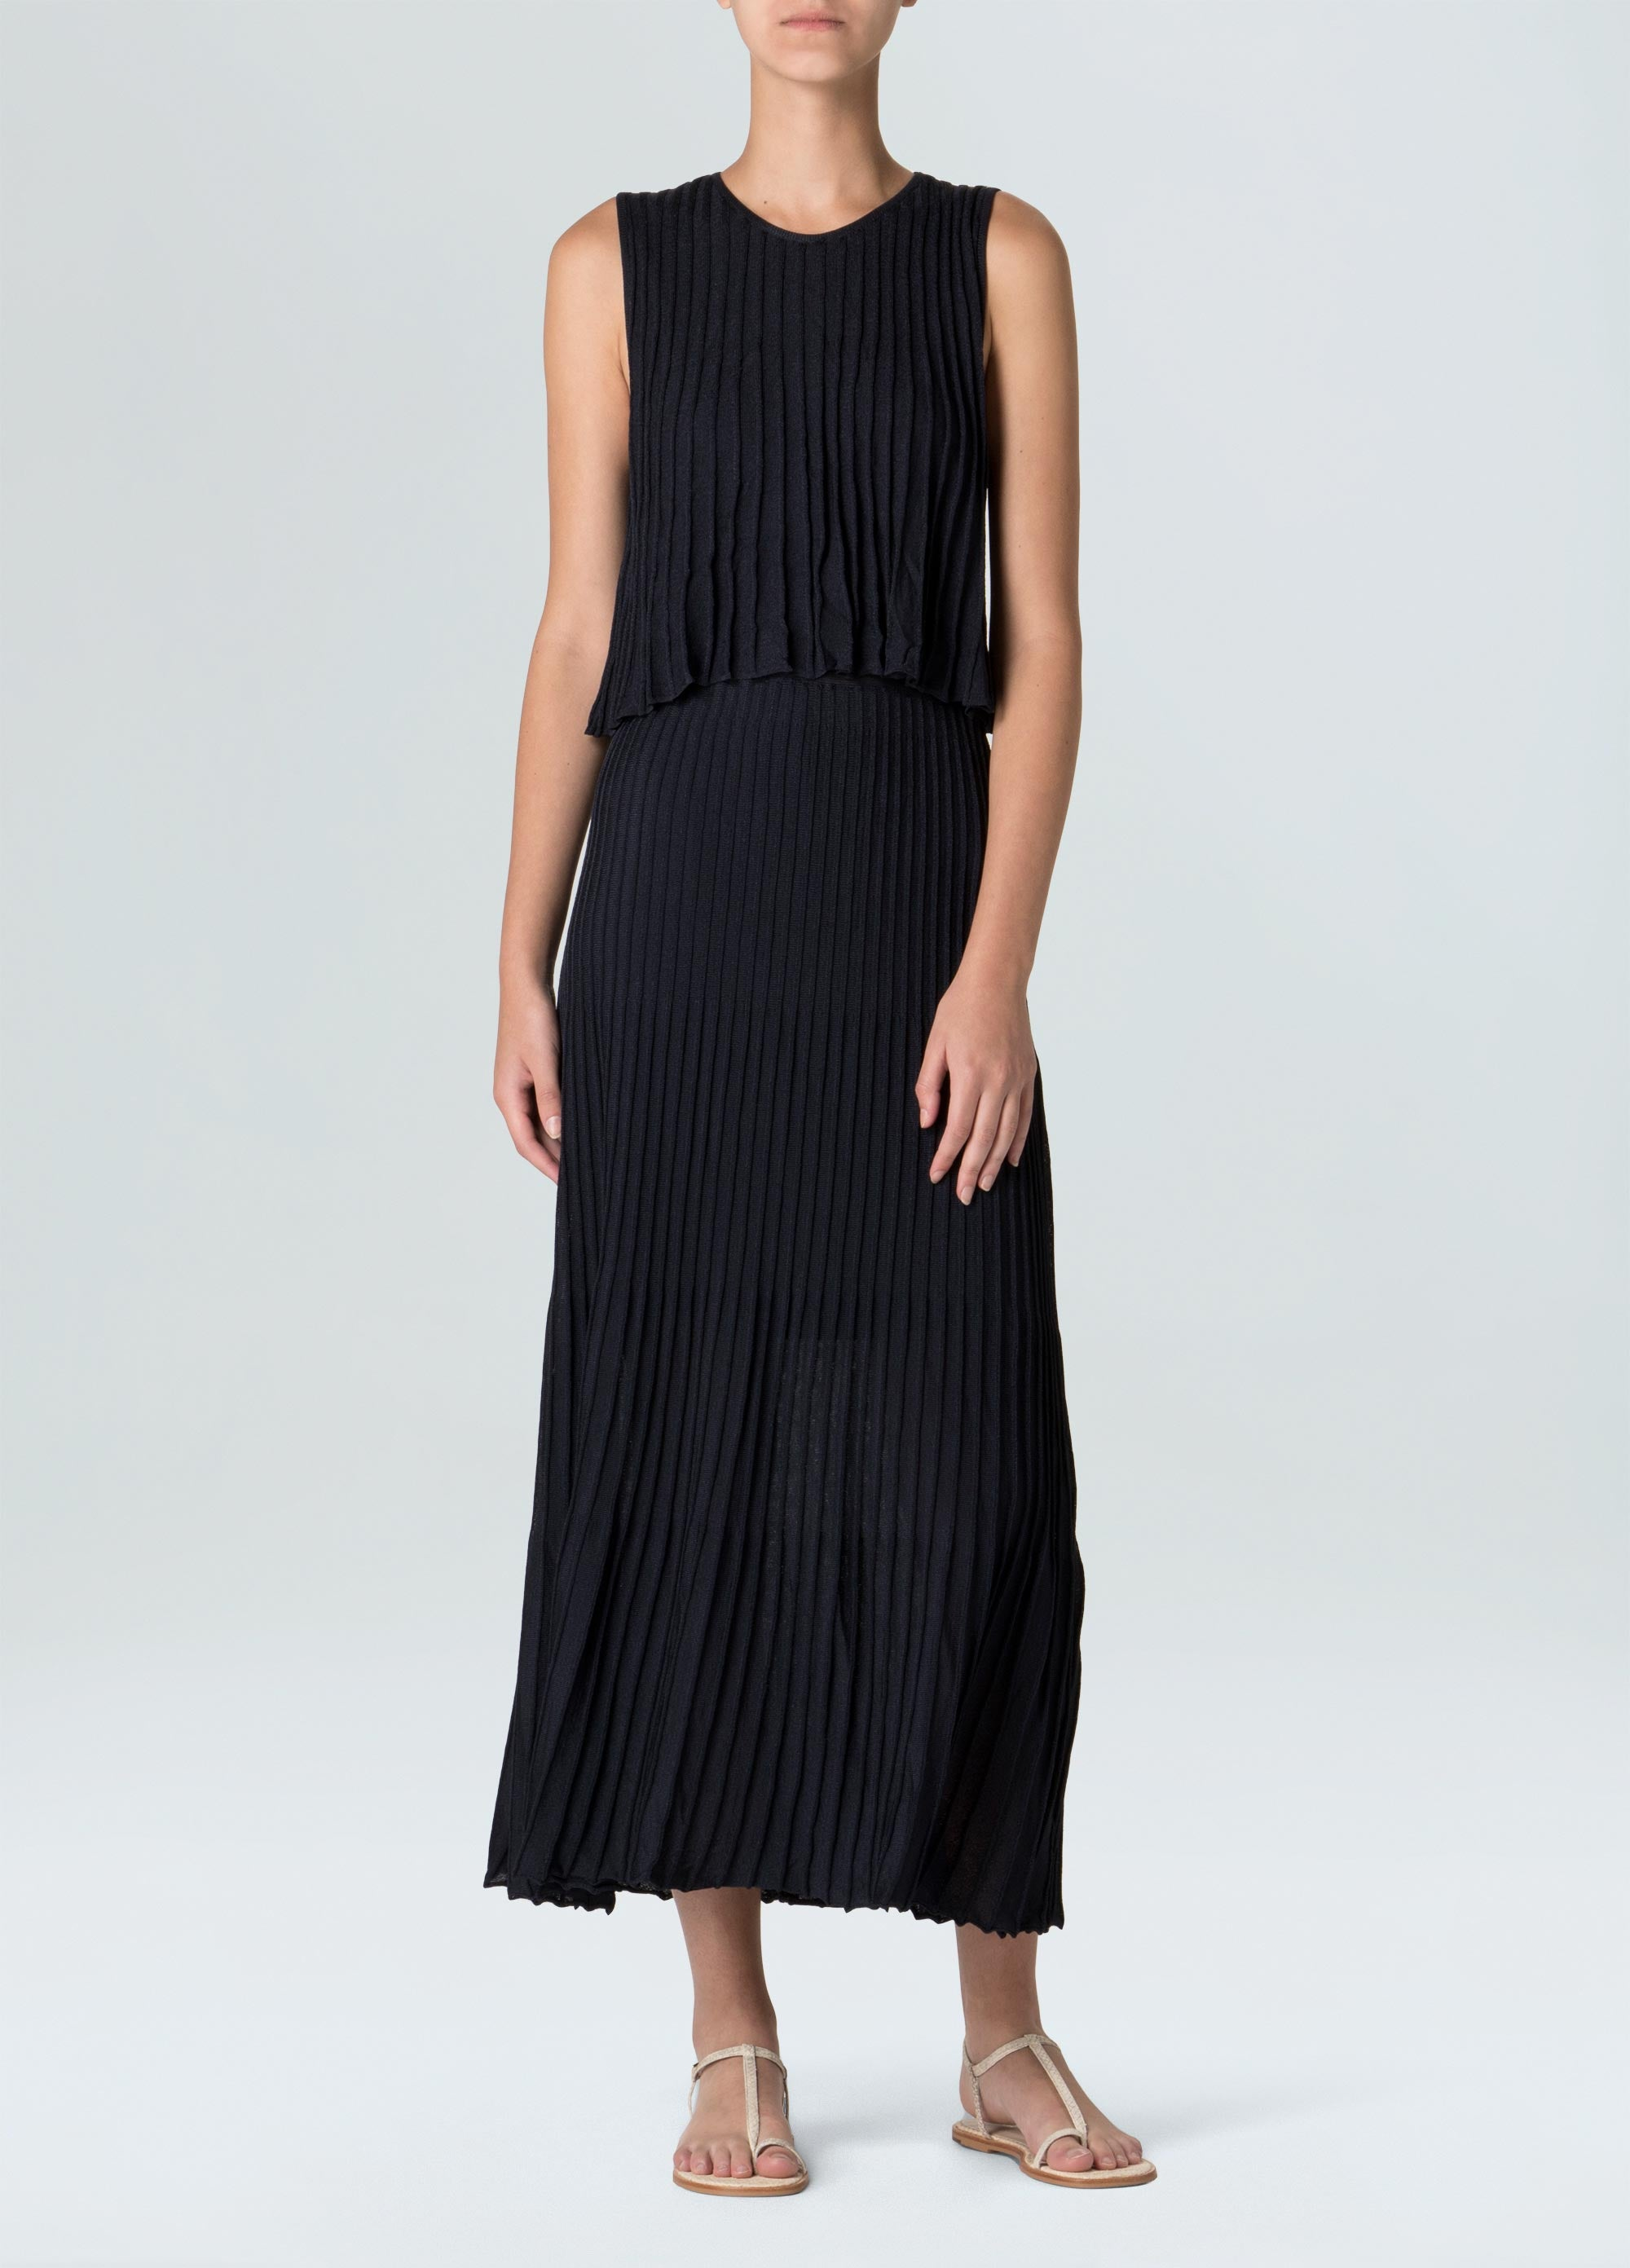 Fluid Sleated Knit Dress